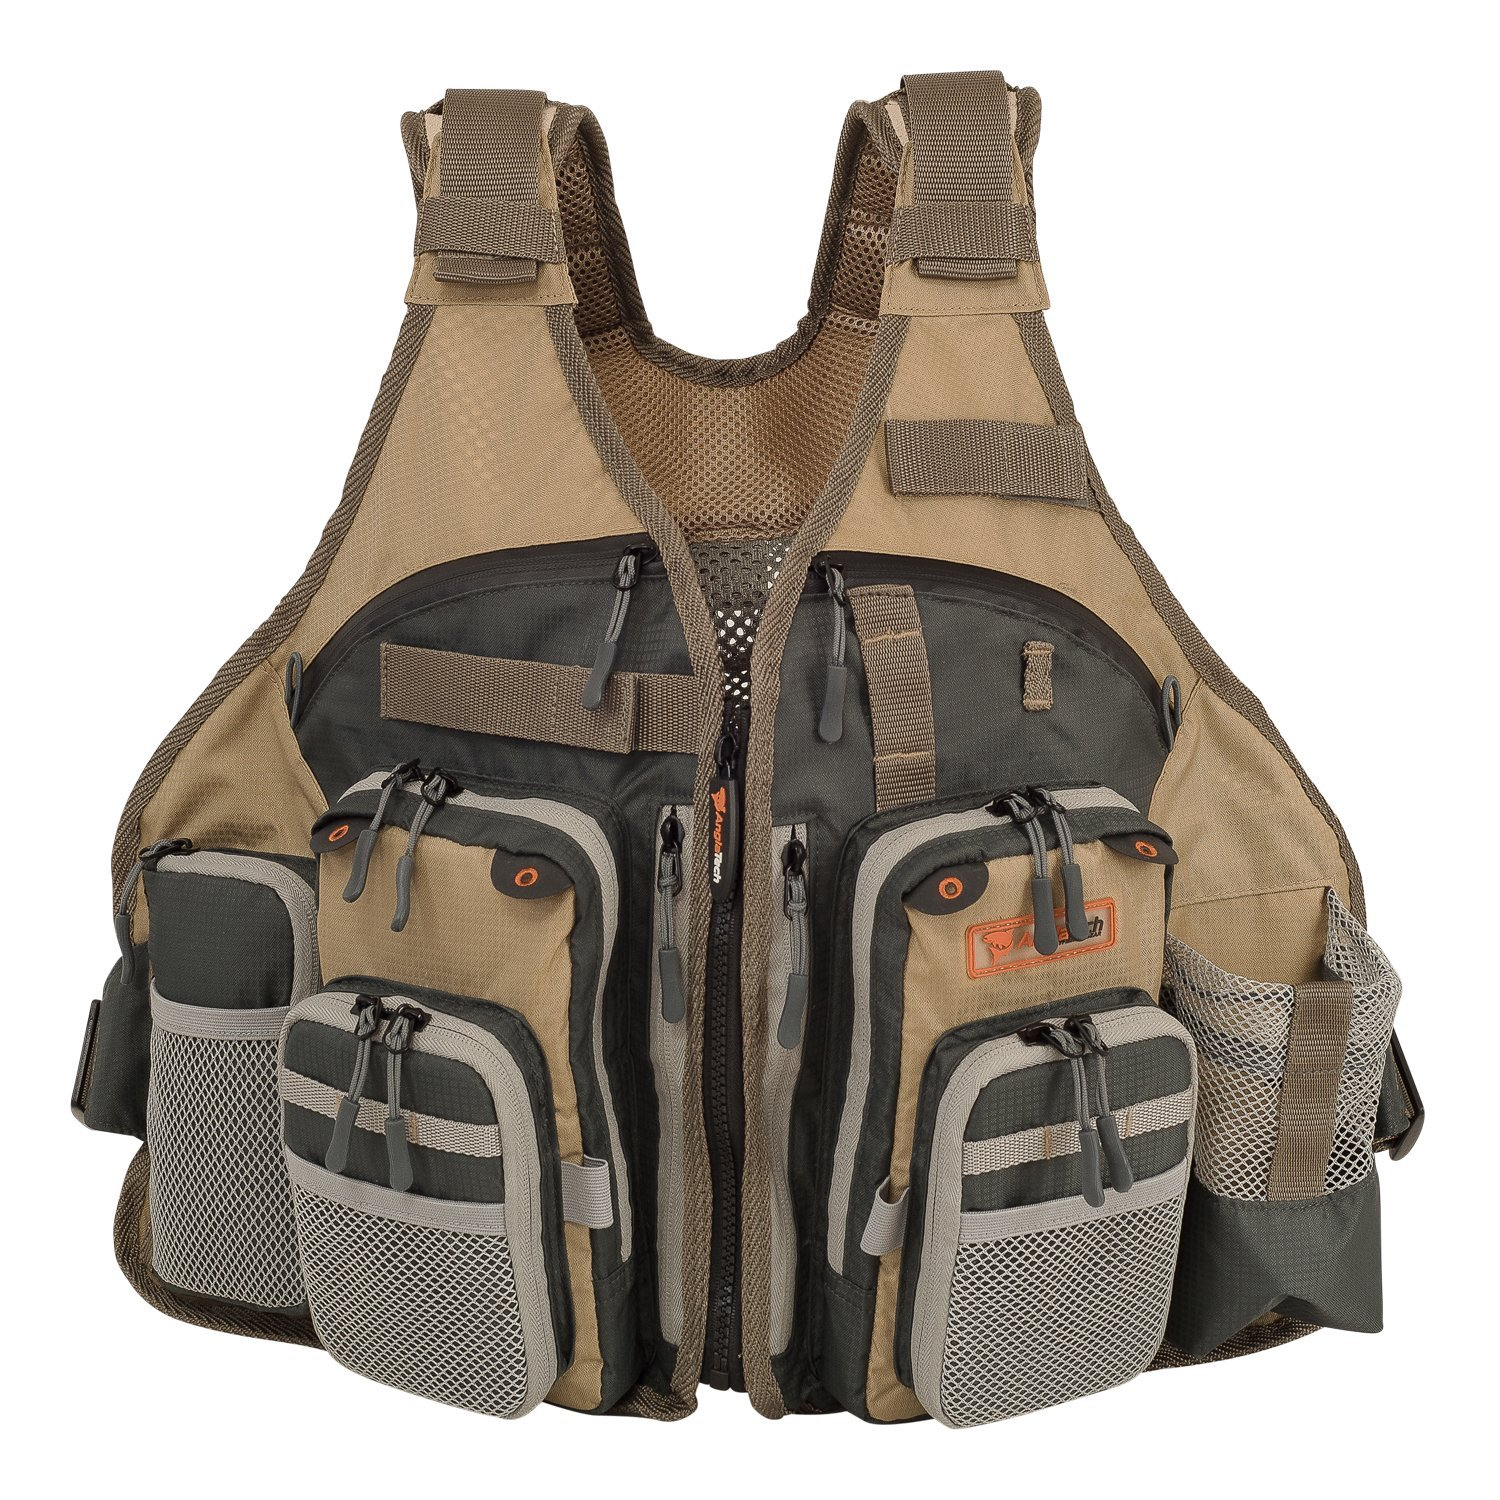 Adjustable mesh fly fishing vest by anglatech review for Fly fishing vest